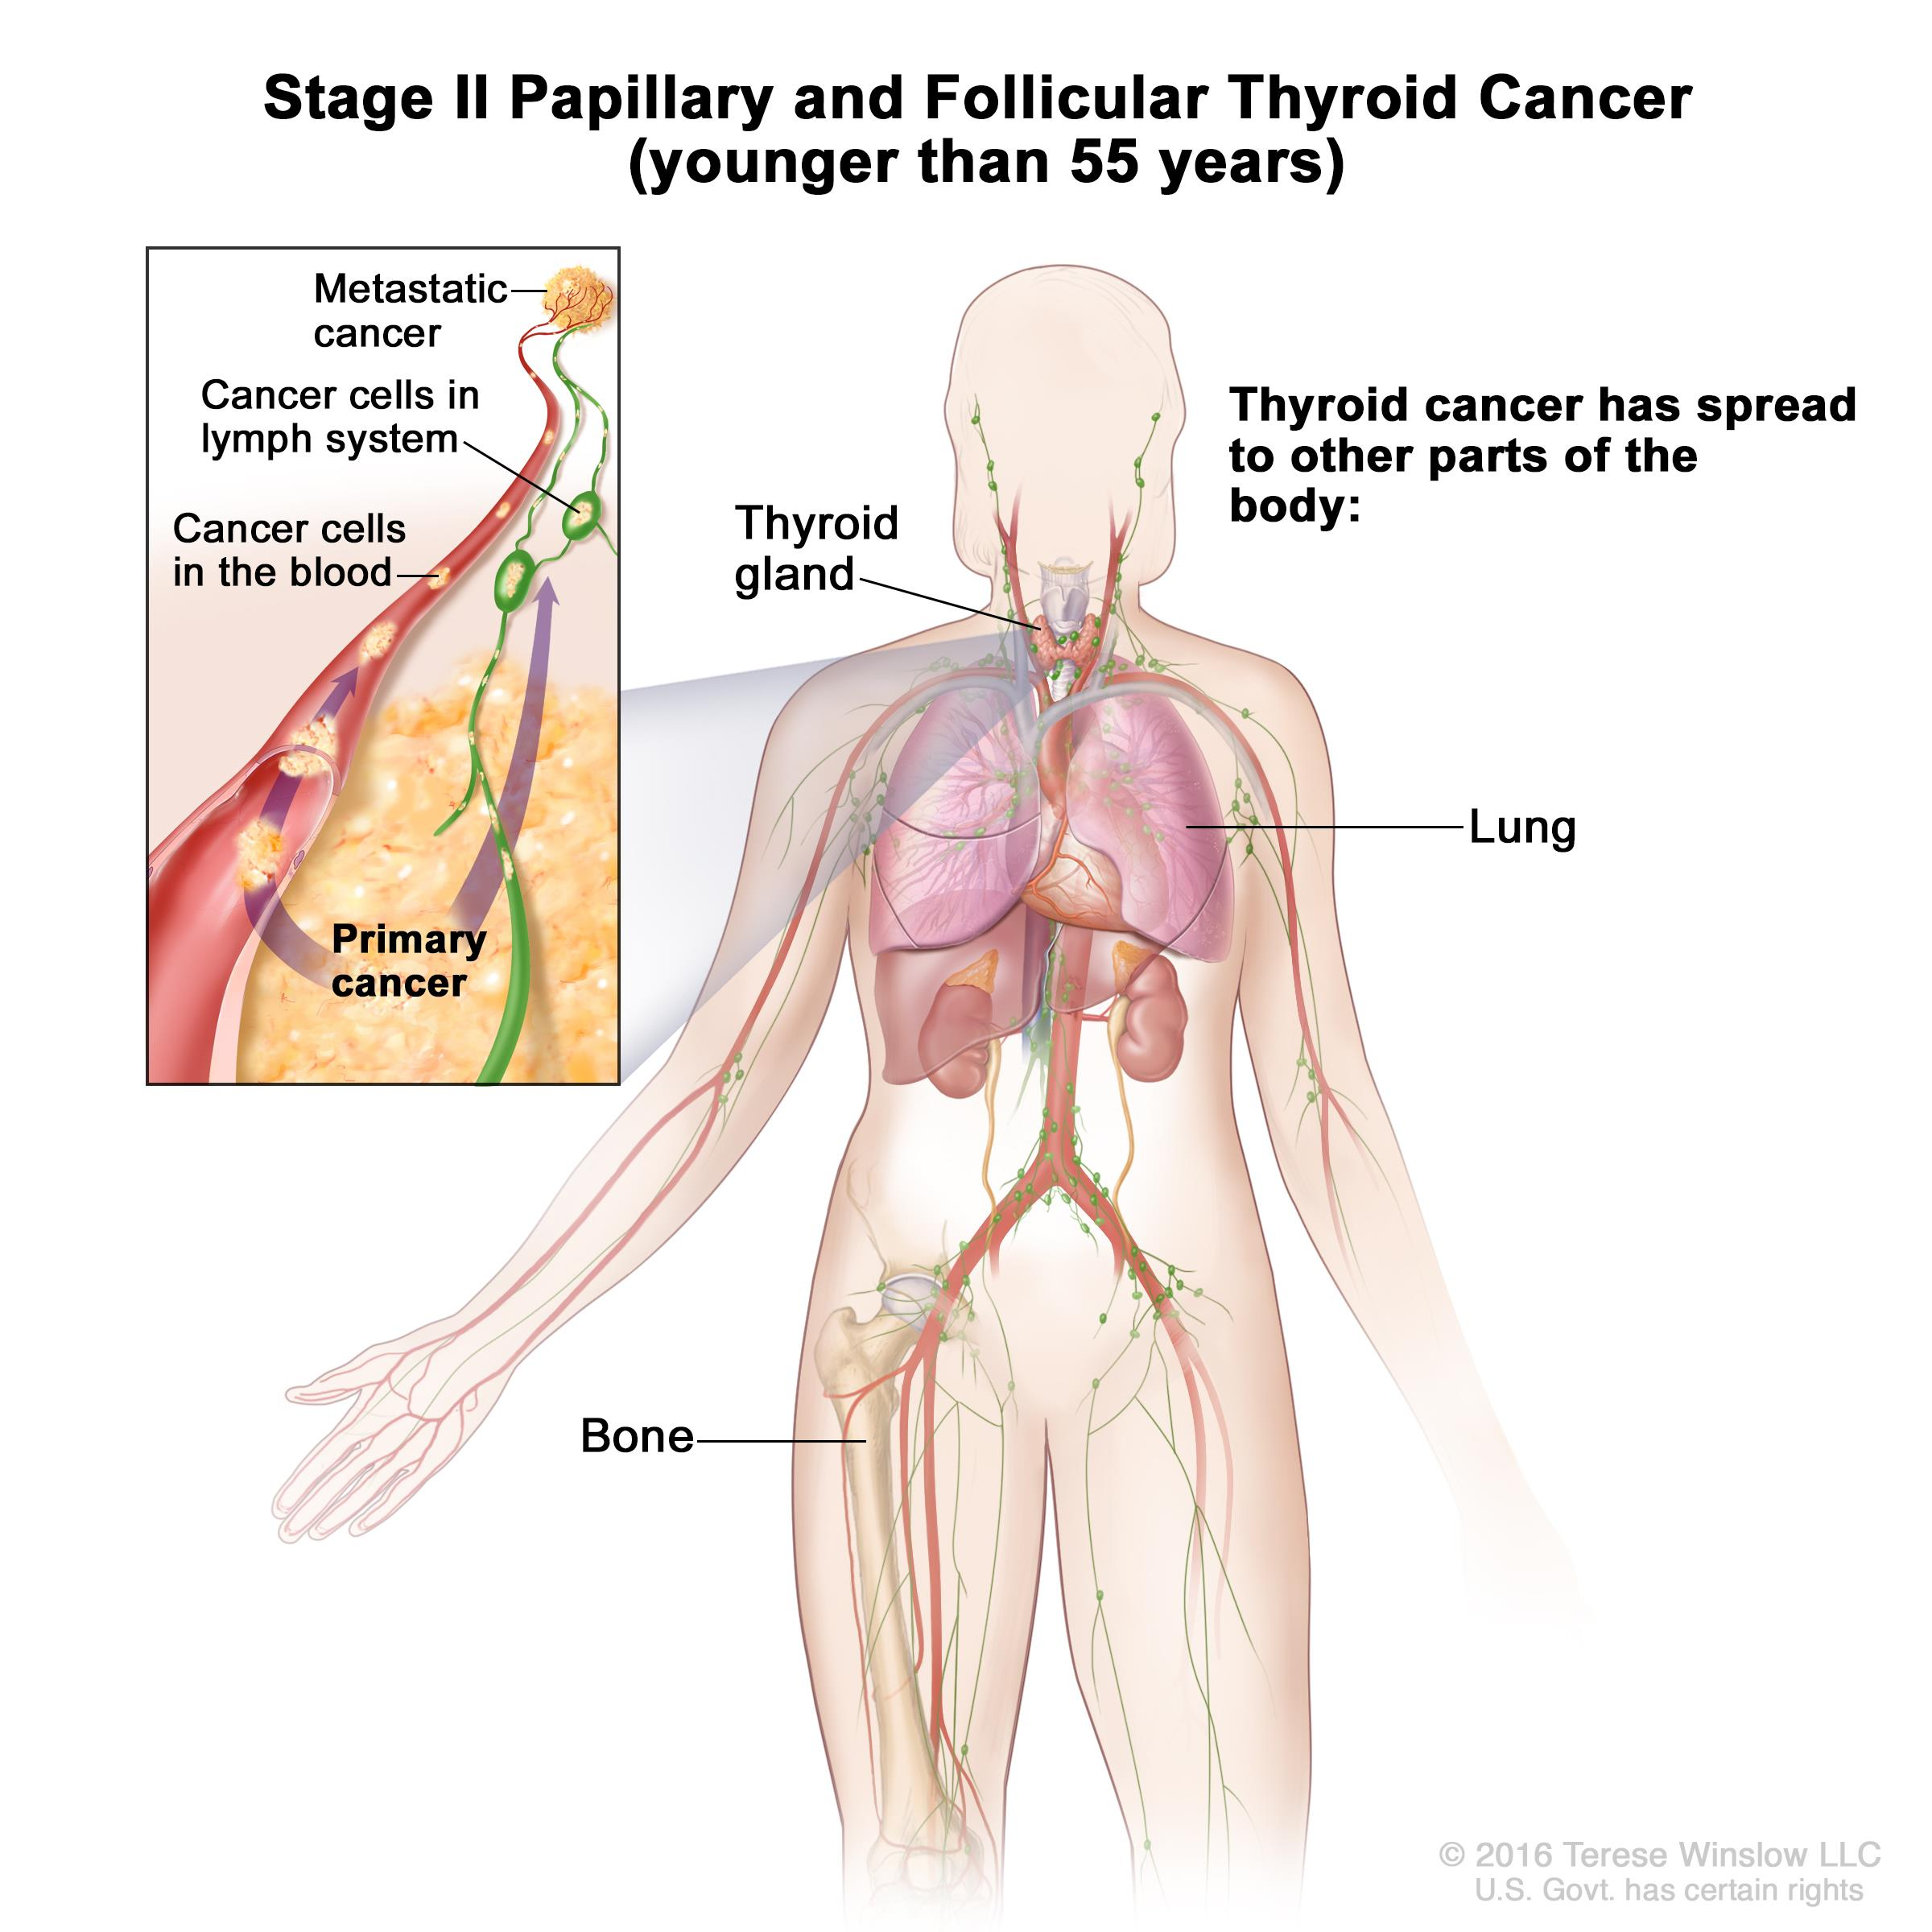 papillary thyroid cancer metastasis to lung symptoms